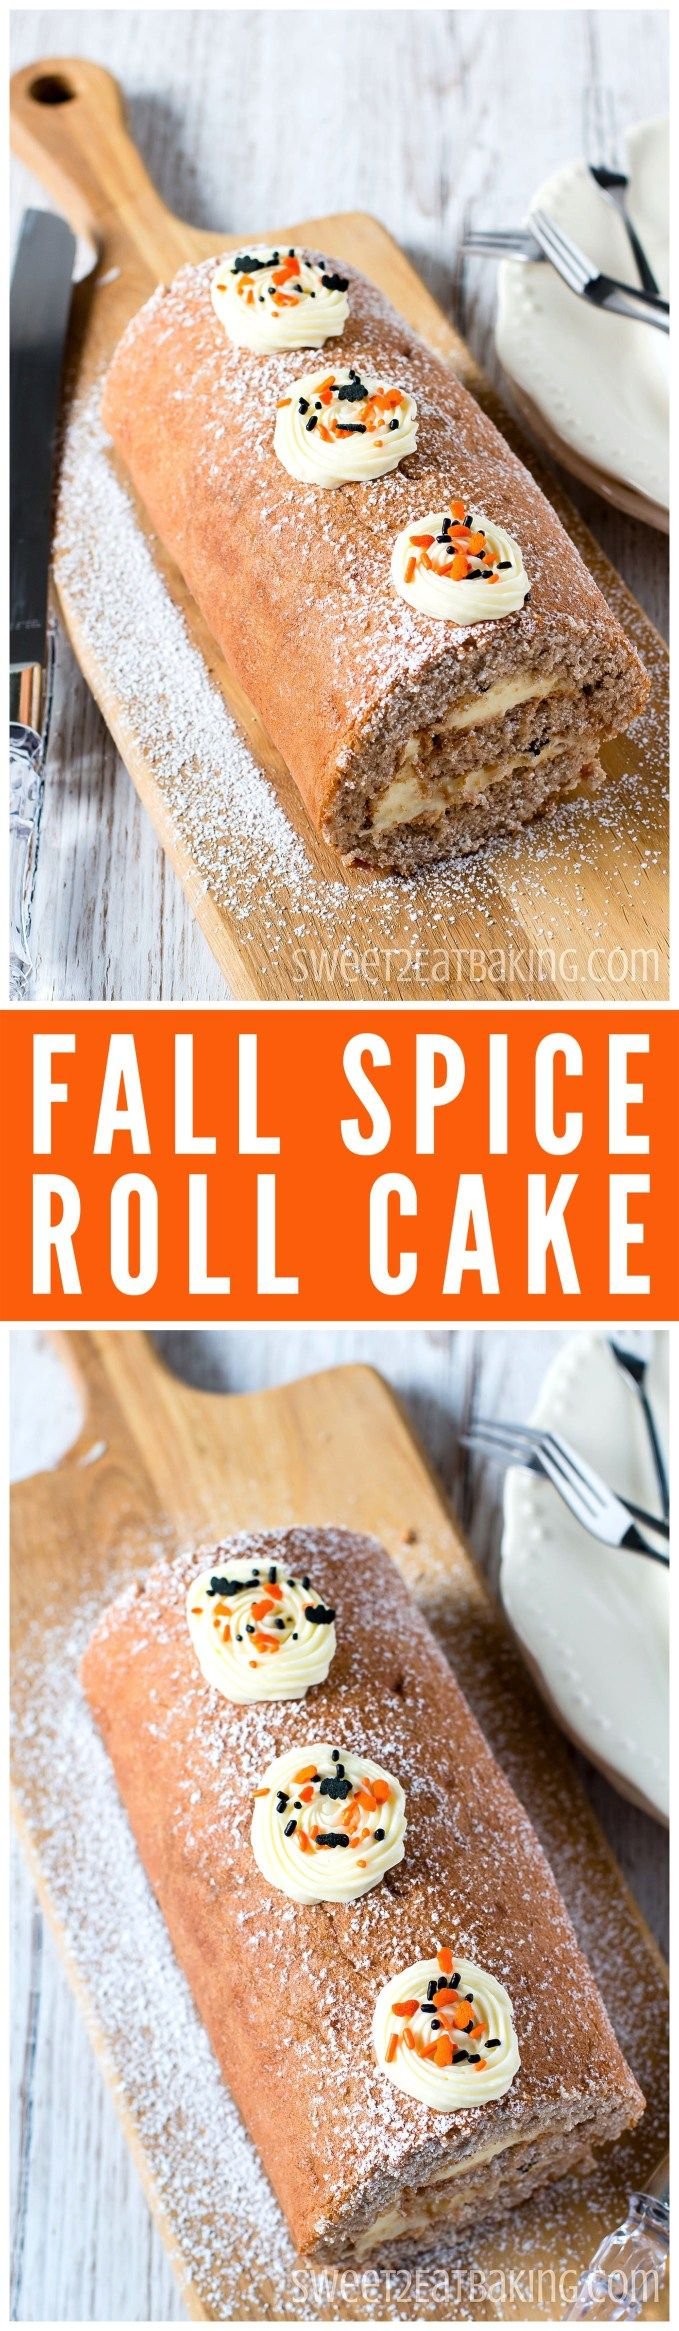 How Much Allspice To White Cake Mix